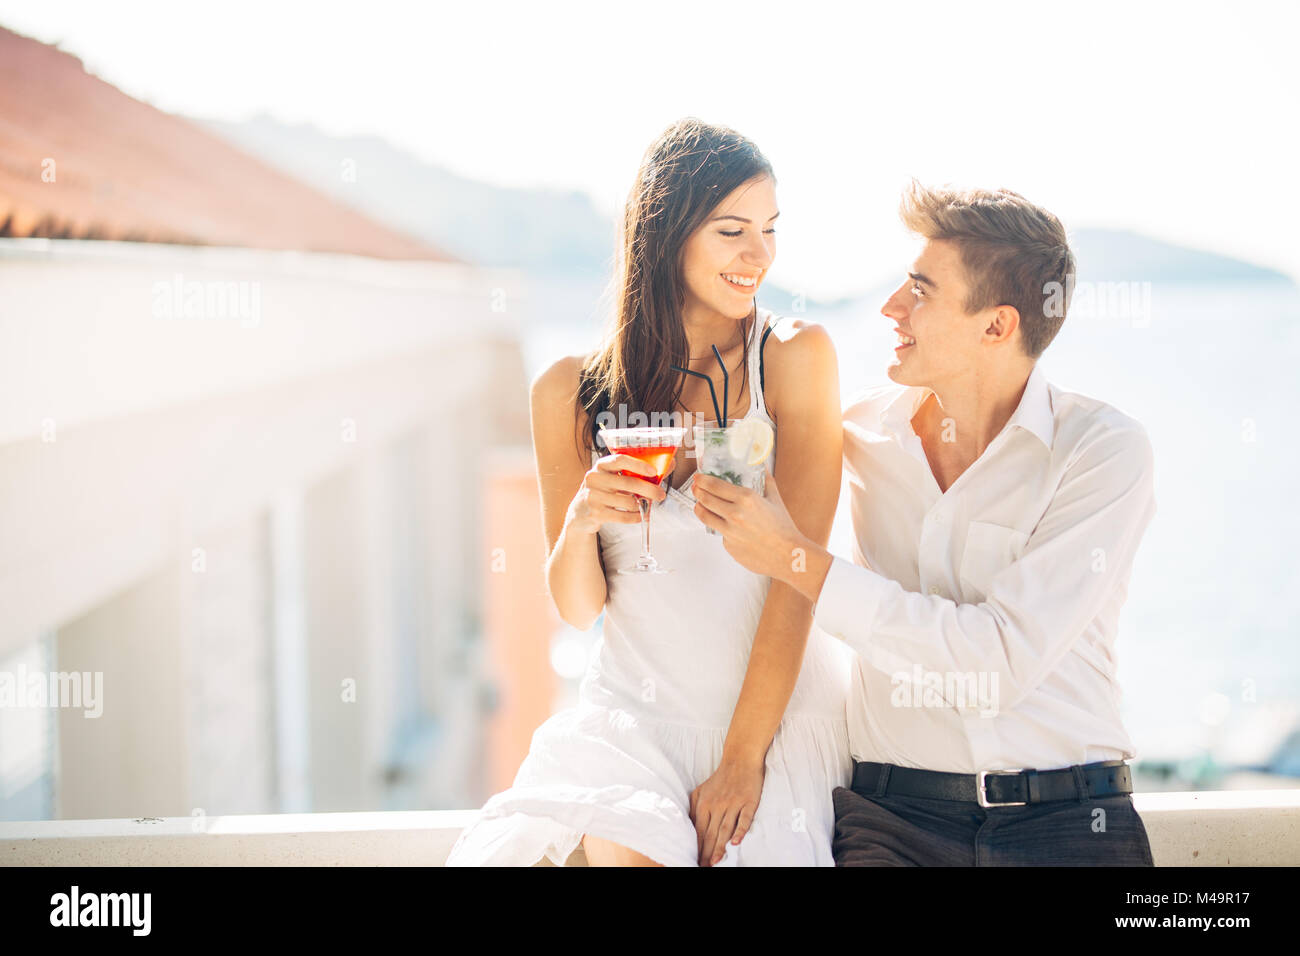 Attractive couple drinking cocktails ,enjoying summer vacation.Smiling,attracted to each other.Flirting and seduction.Man - Stock Image